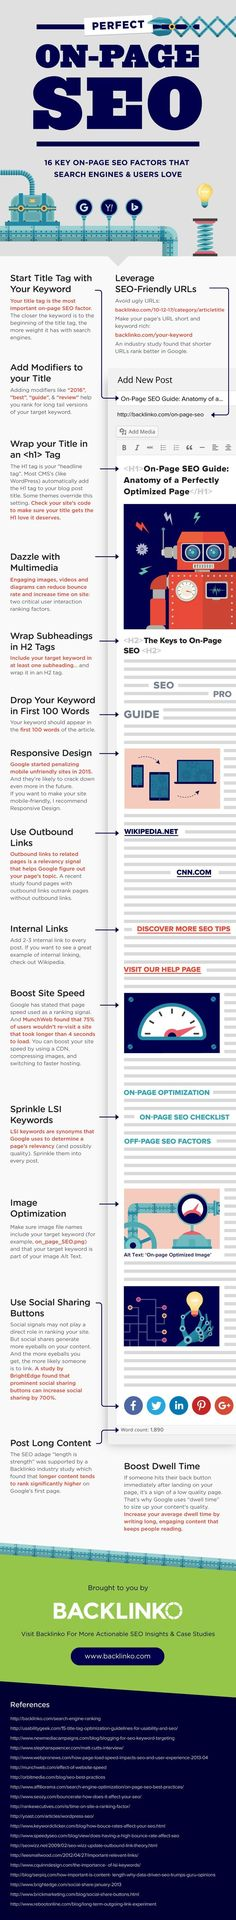 An insanely large infographic that's chock full of useful information...from @backlinko.com: